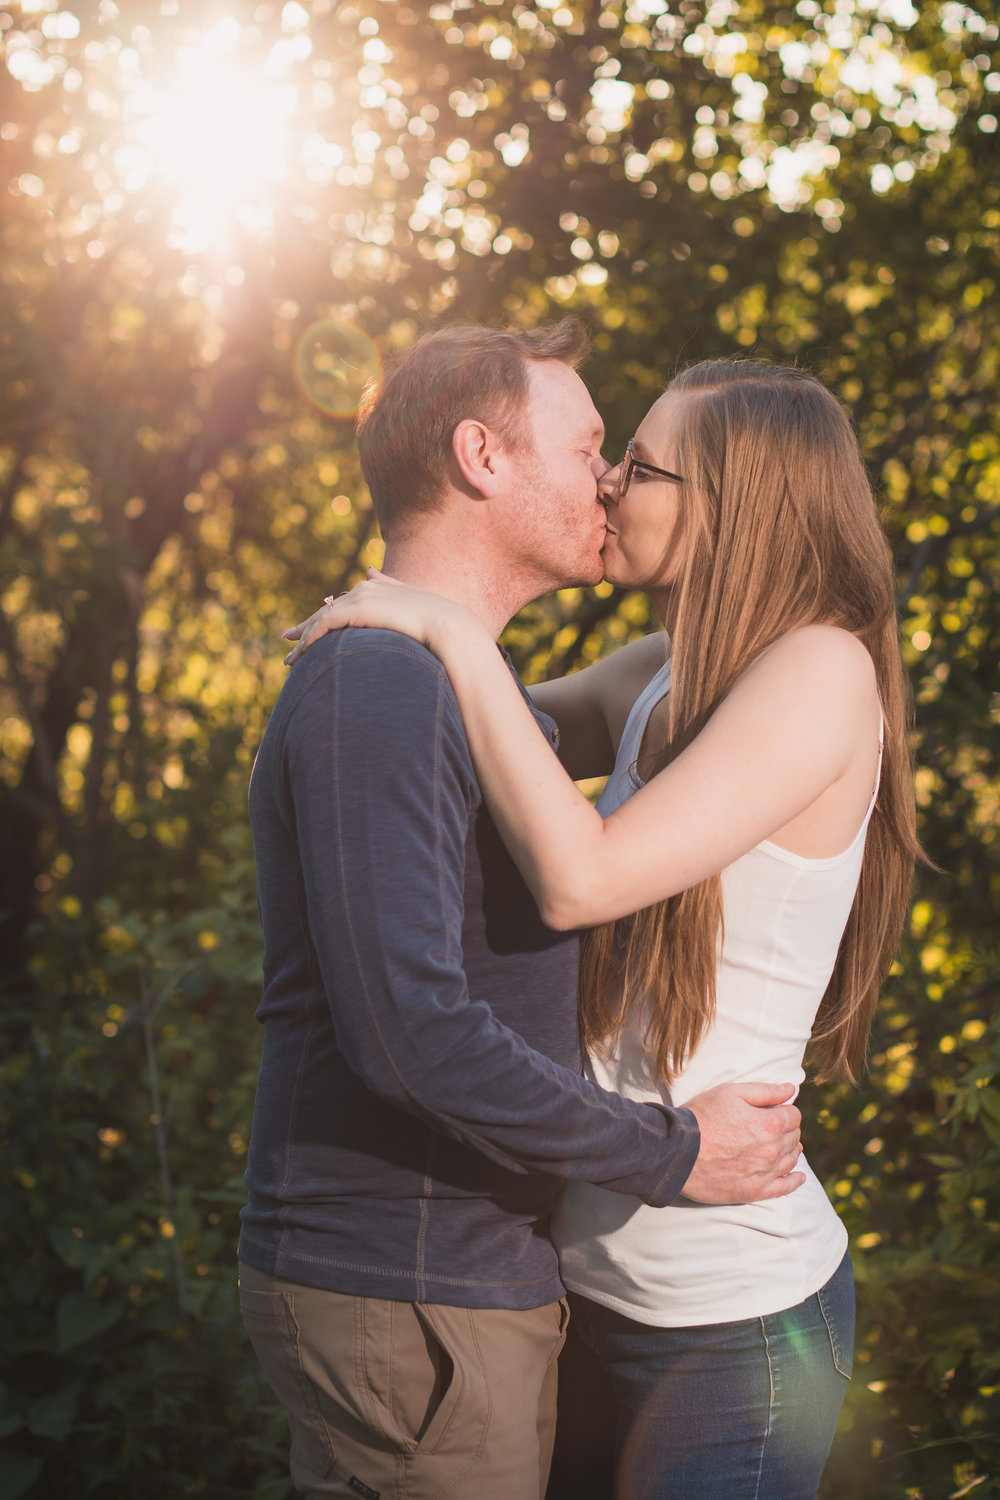 amanda+sean_engagement_20180603_32.jpg